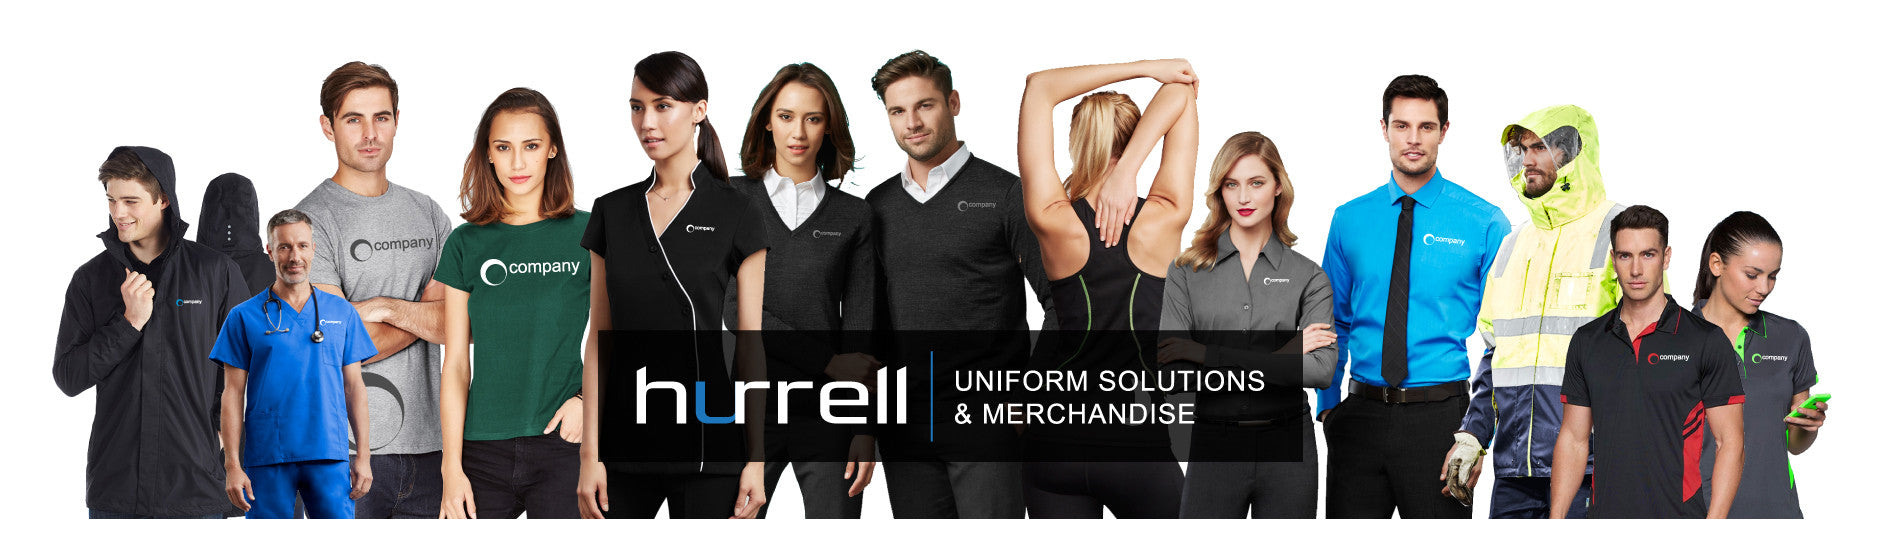 Hurrell Uniform Solutions, Stock Service Uniform, Coporate, Teamwear, Hospitality